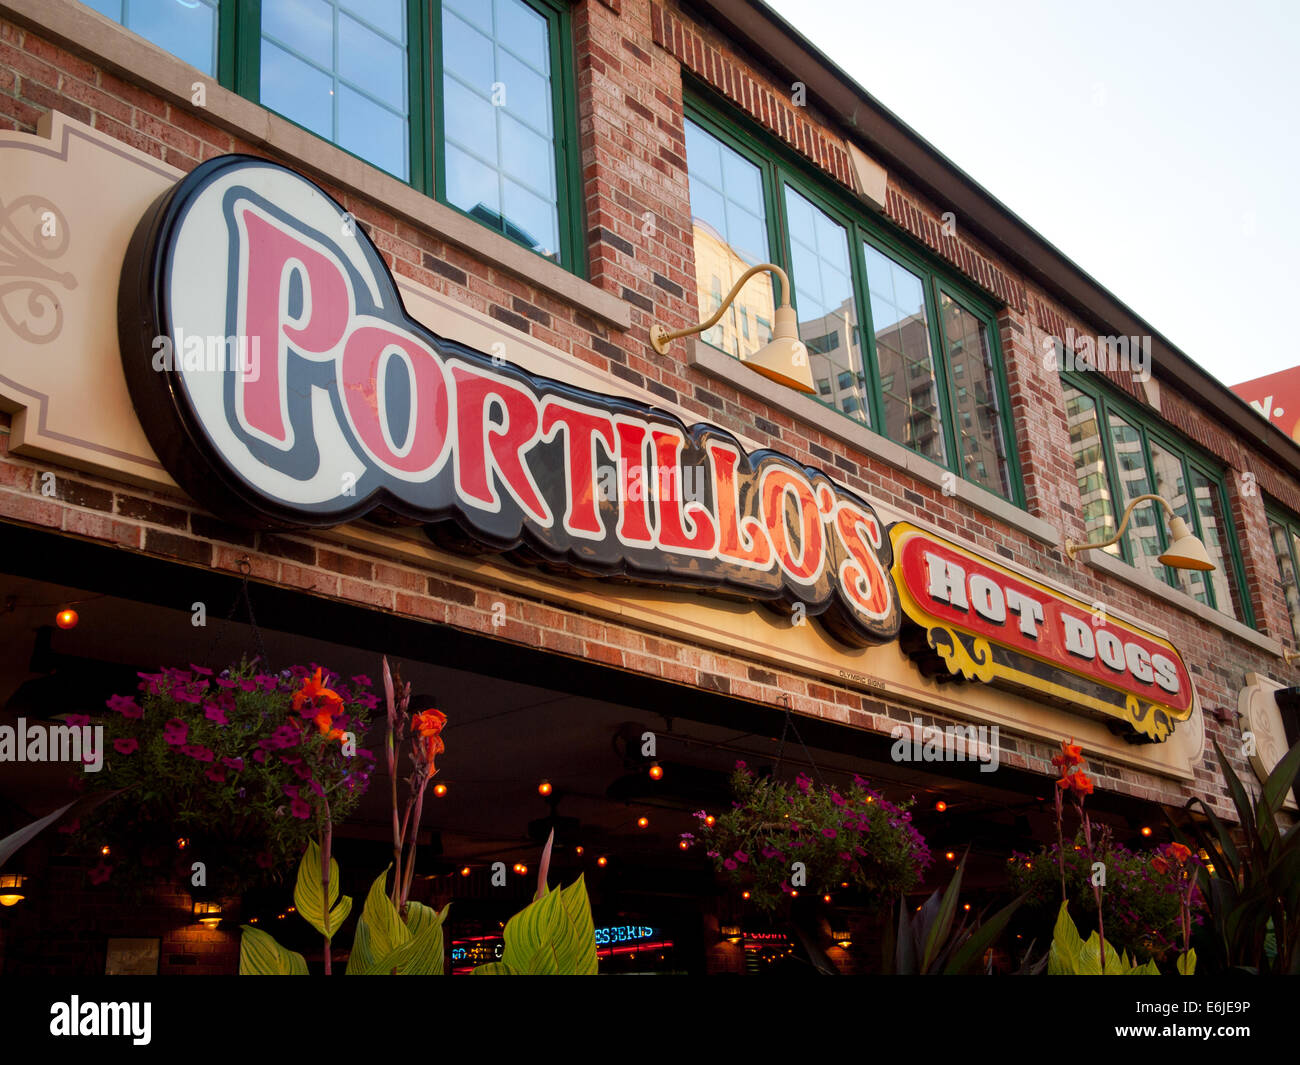 the exterior of a portillo 39 s hot dogs restaurant in the. Black Bedroom Furniture Sets. Home Design Ideas